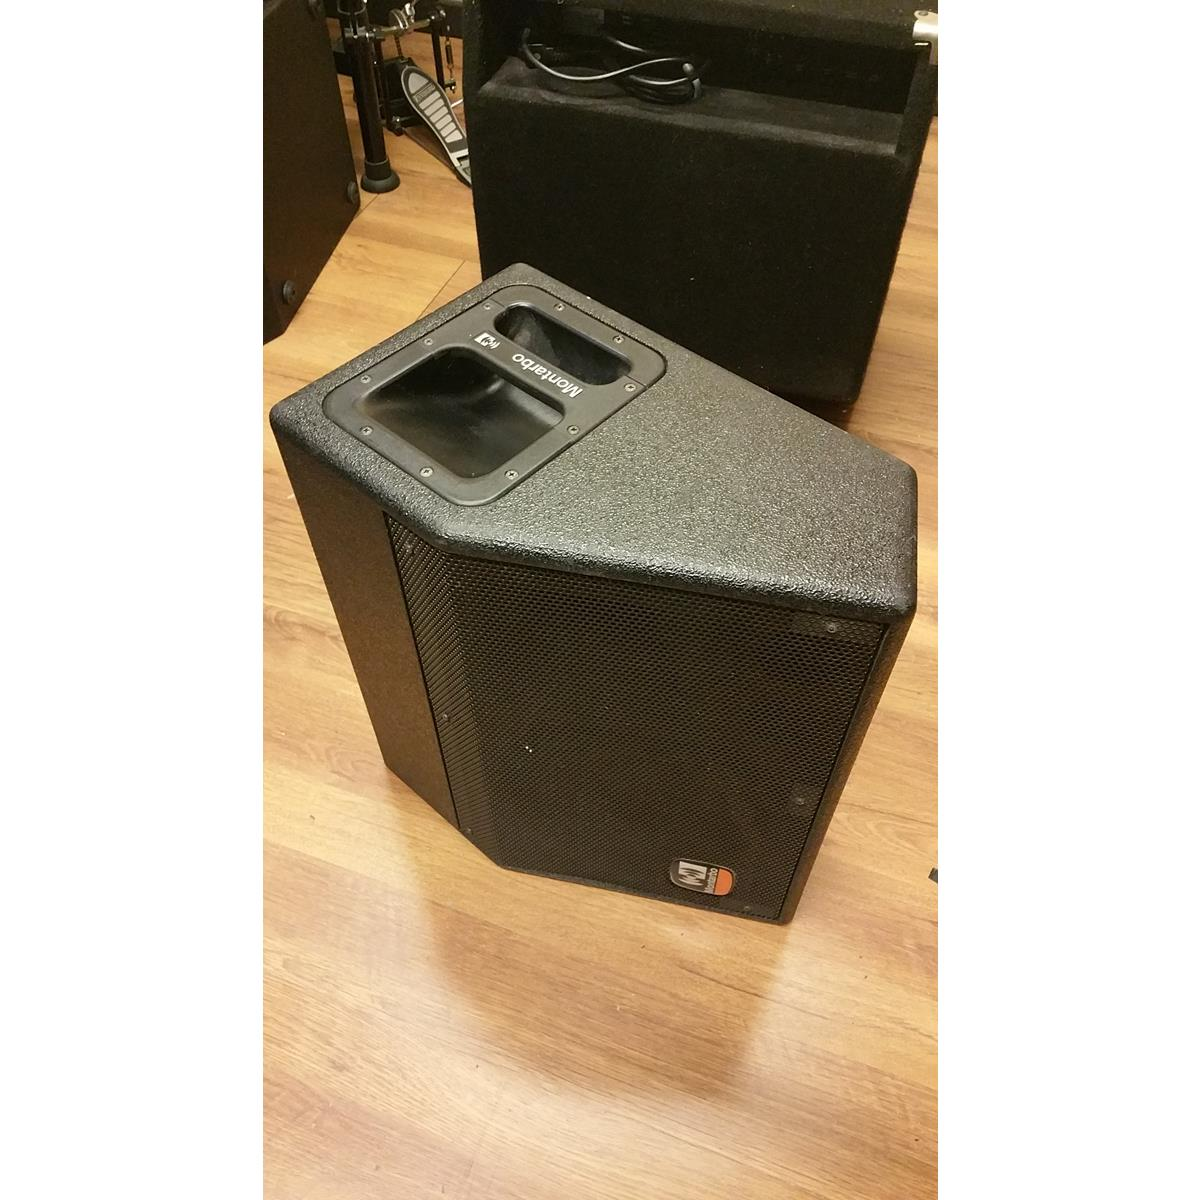 MONTARBO M 22 A MONITOR SPIA .